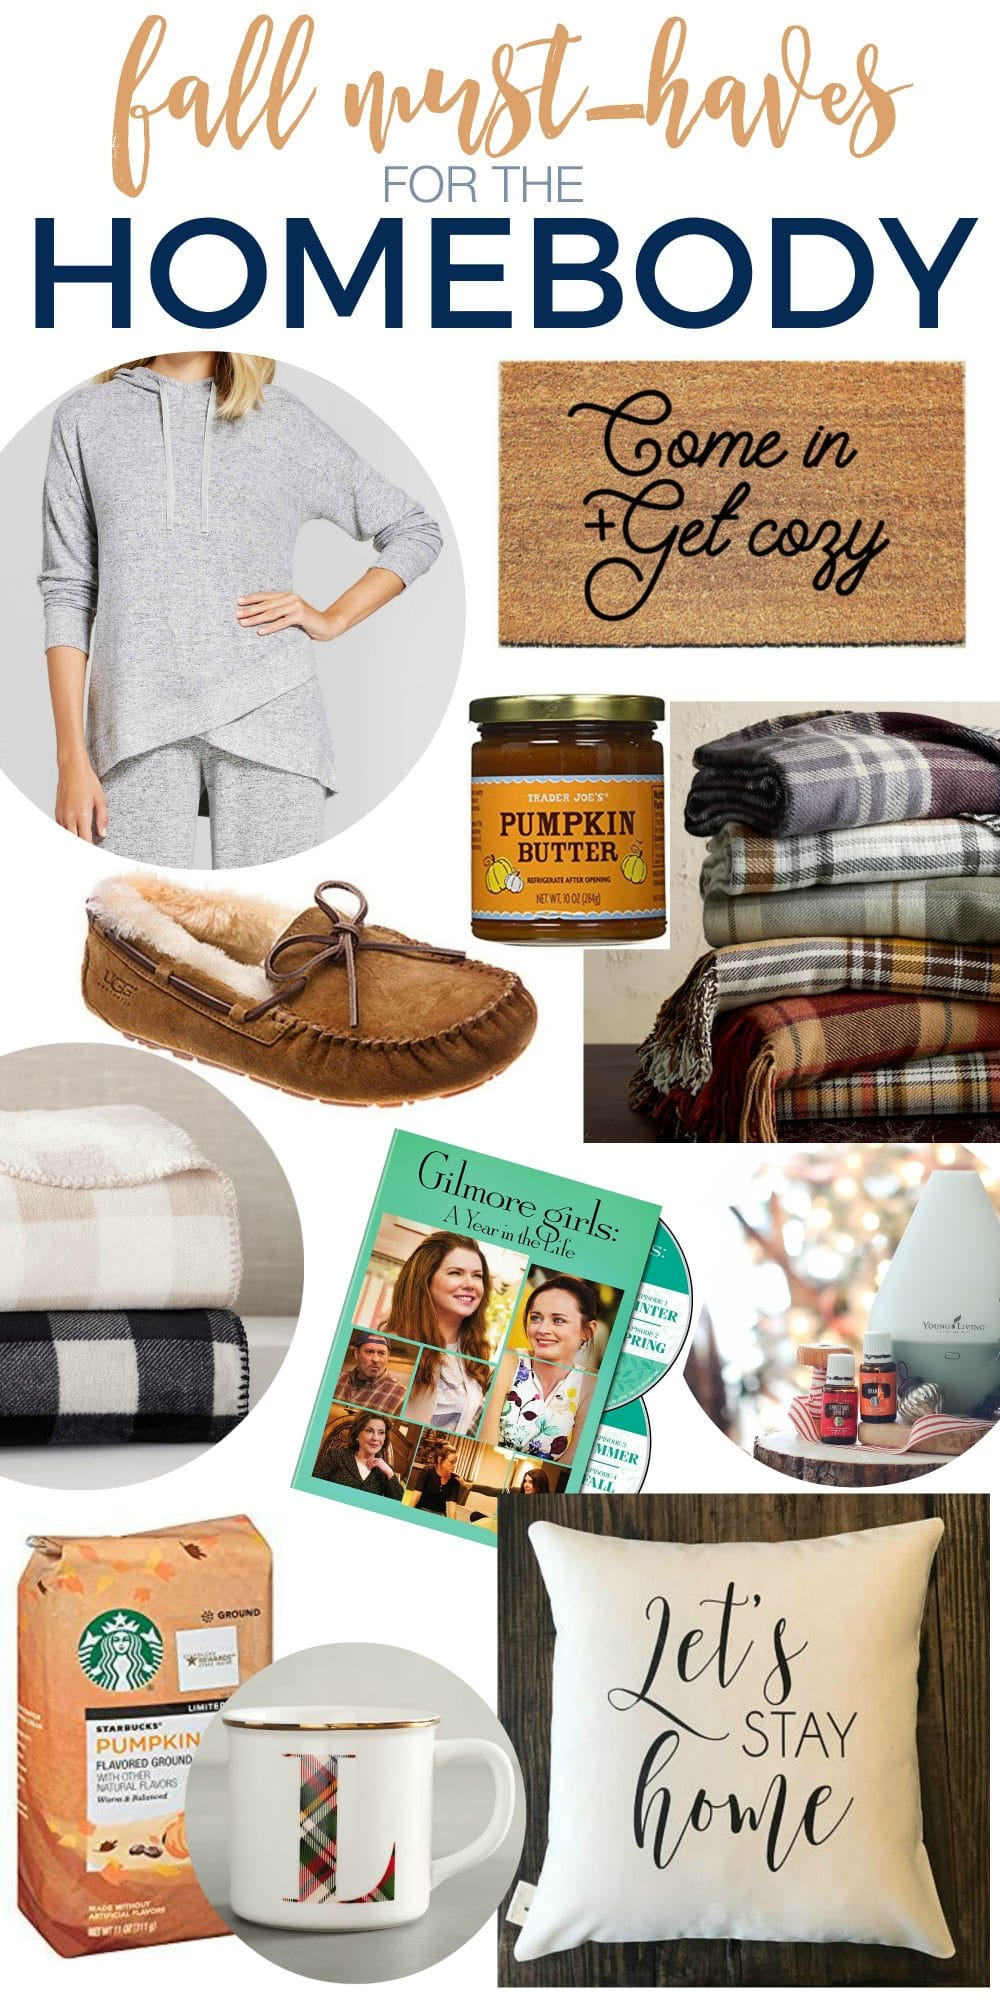 Let's Stay Home!!! Fall Must-Haves for the Homebody - cozy and warm!